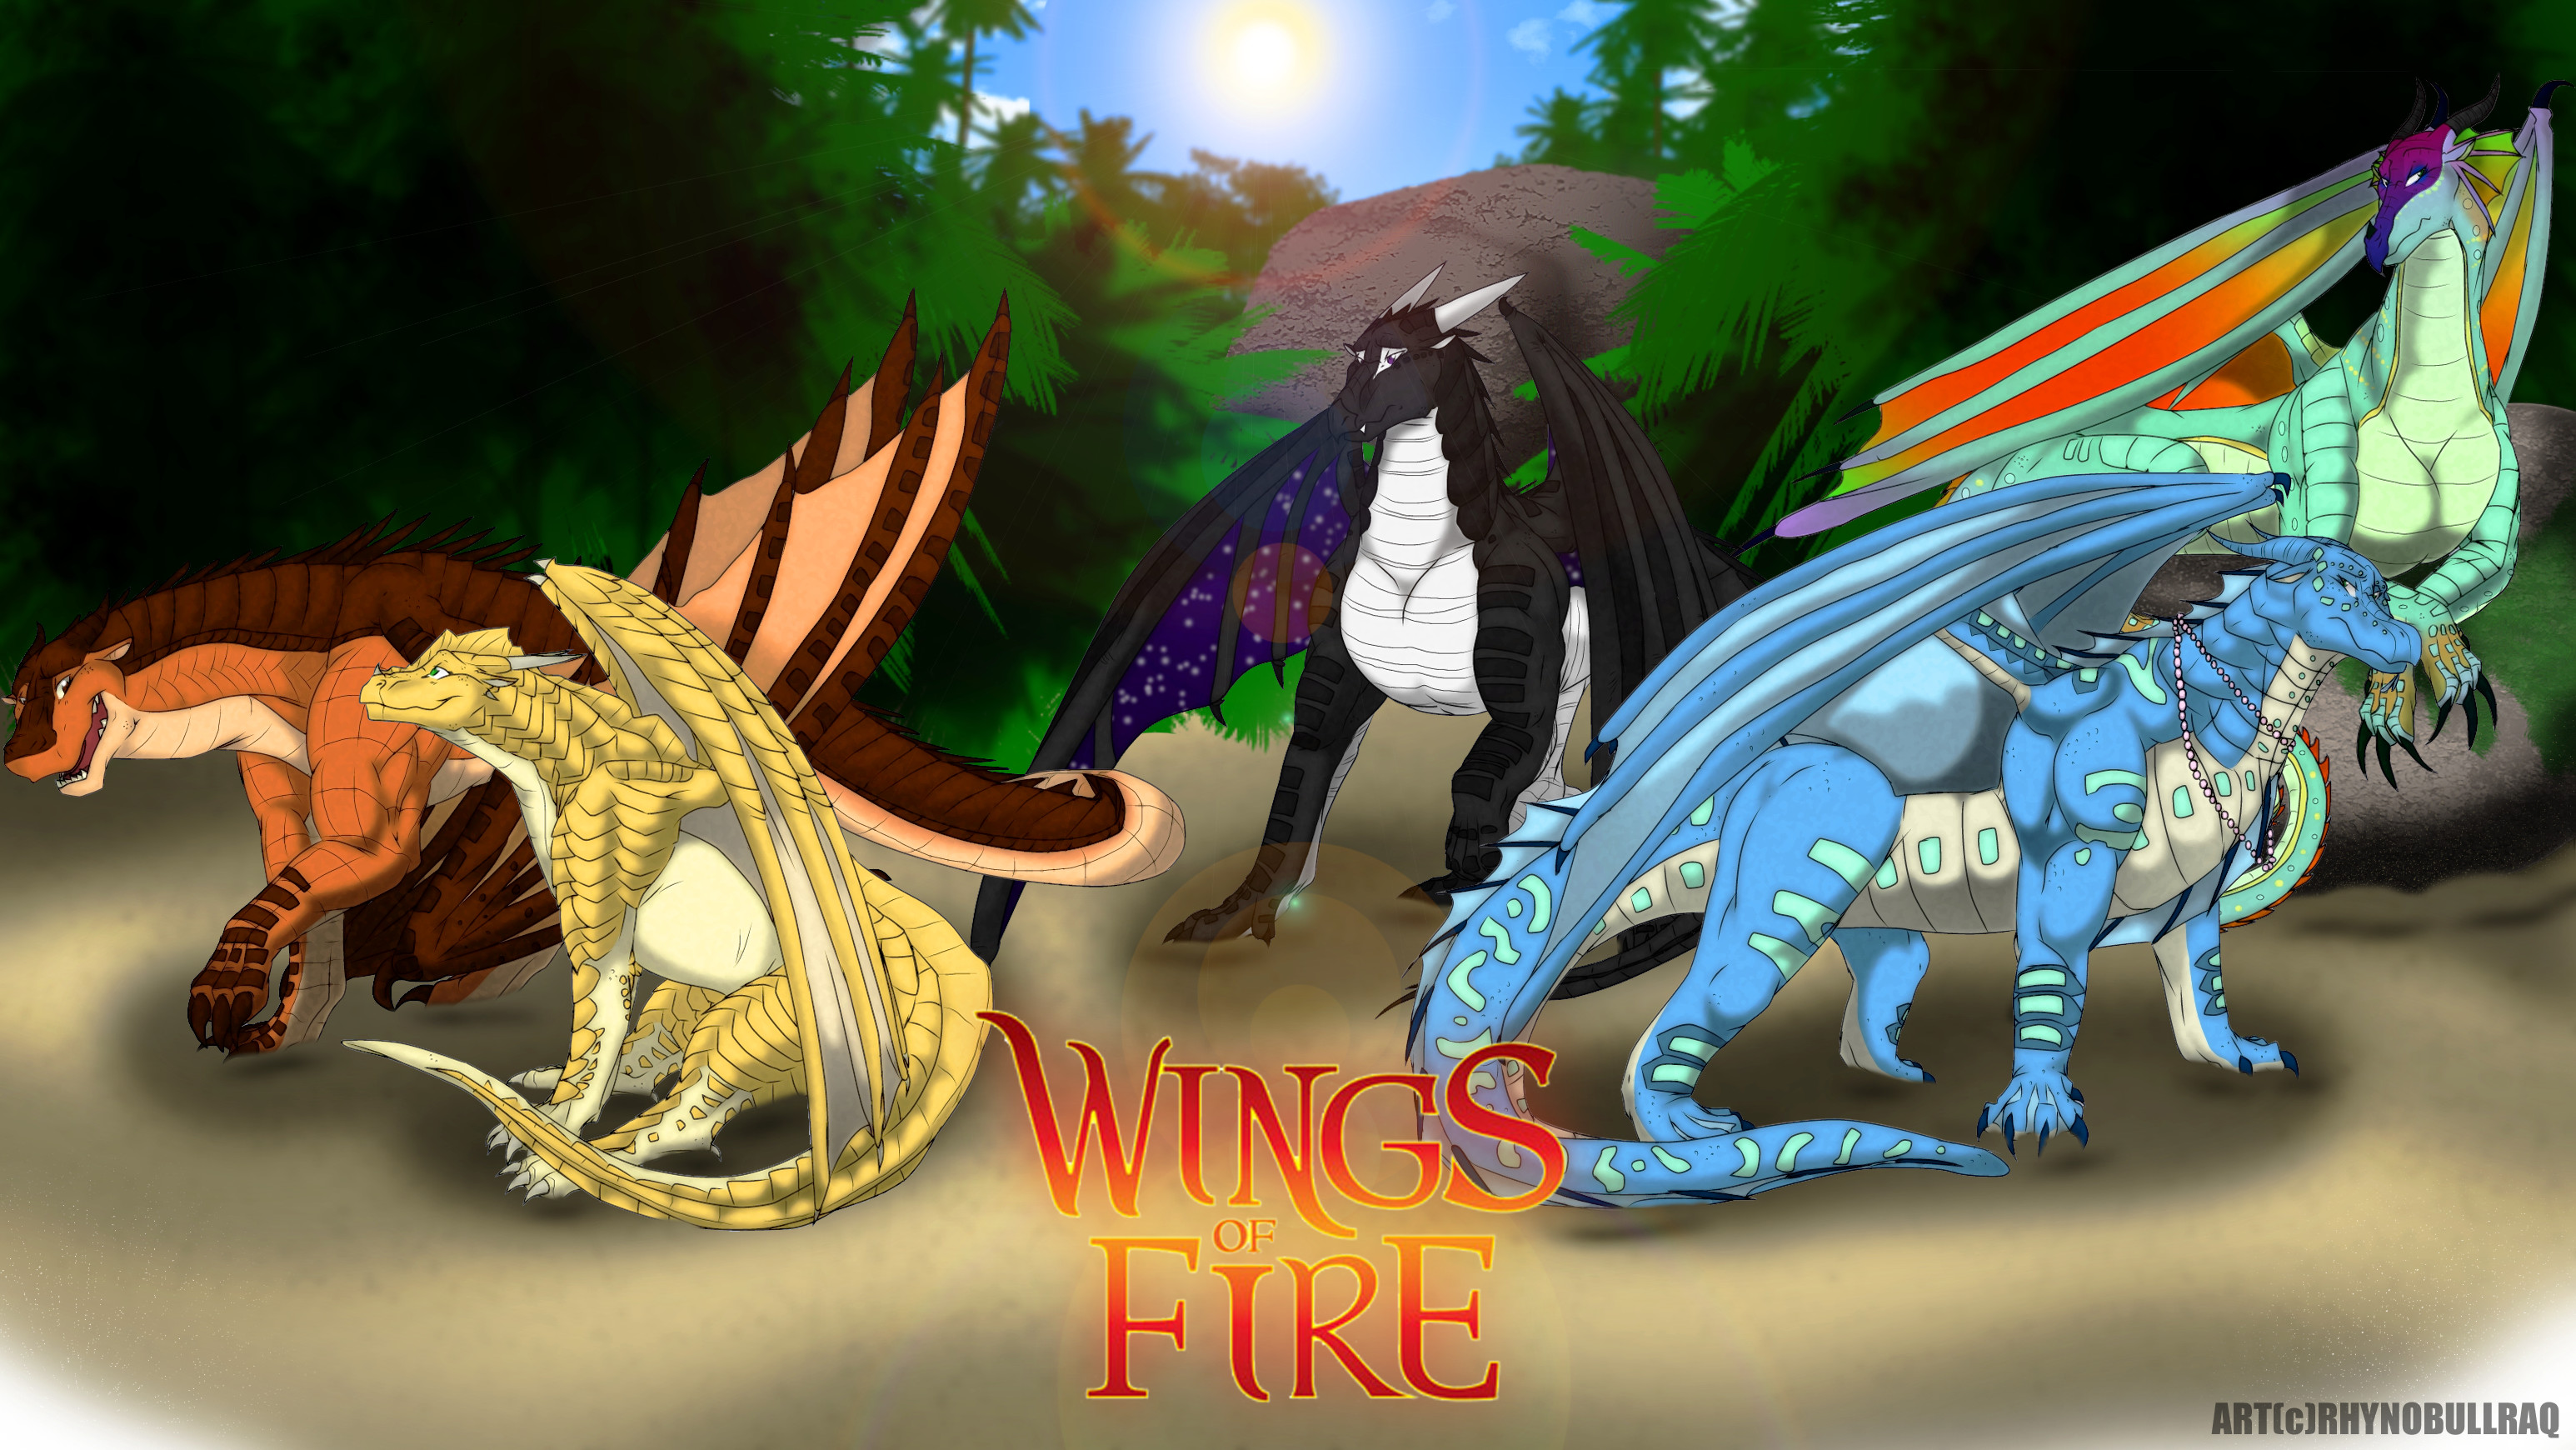 3092x1740 By Jannet Riddell - Wings Of Fire,  px